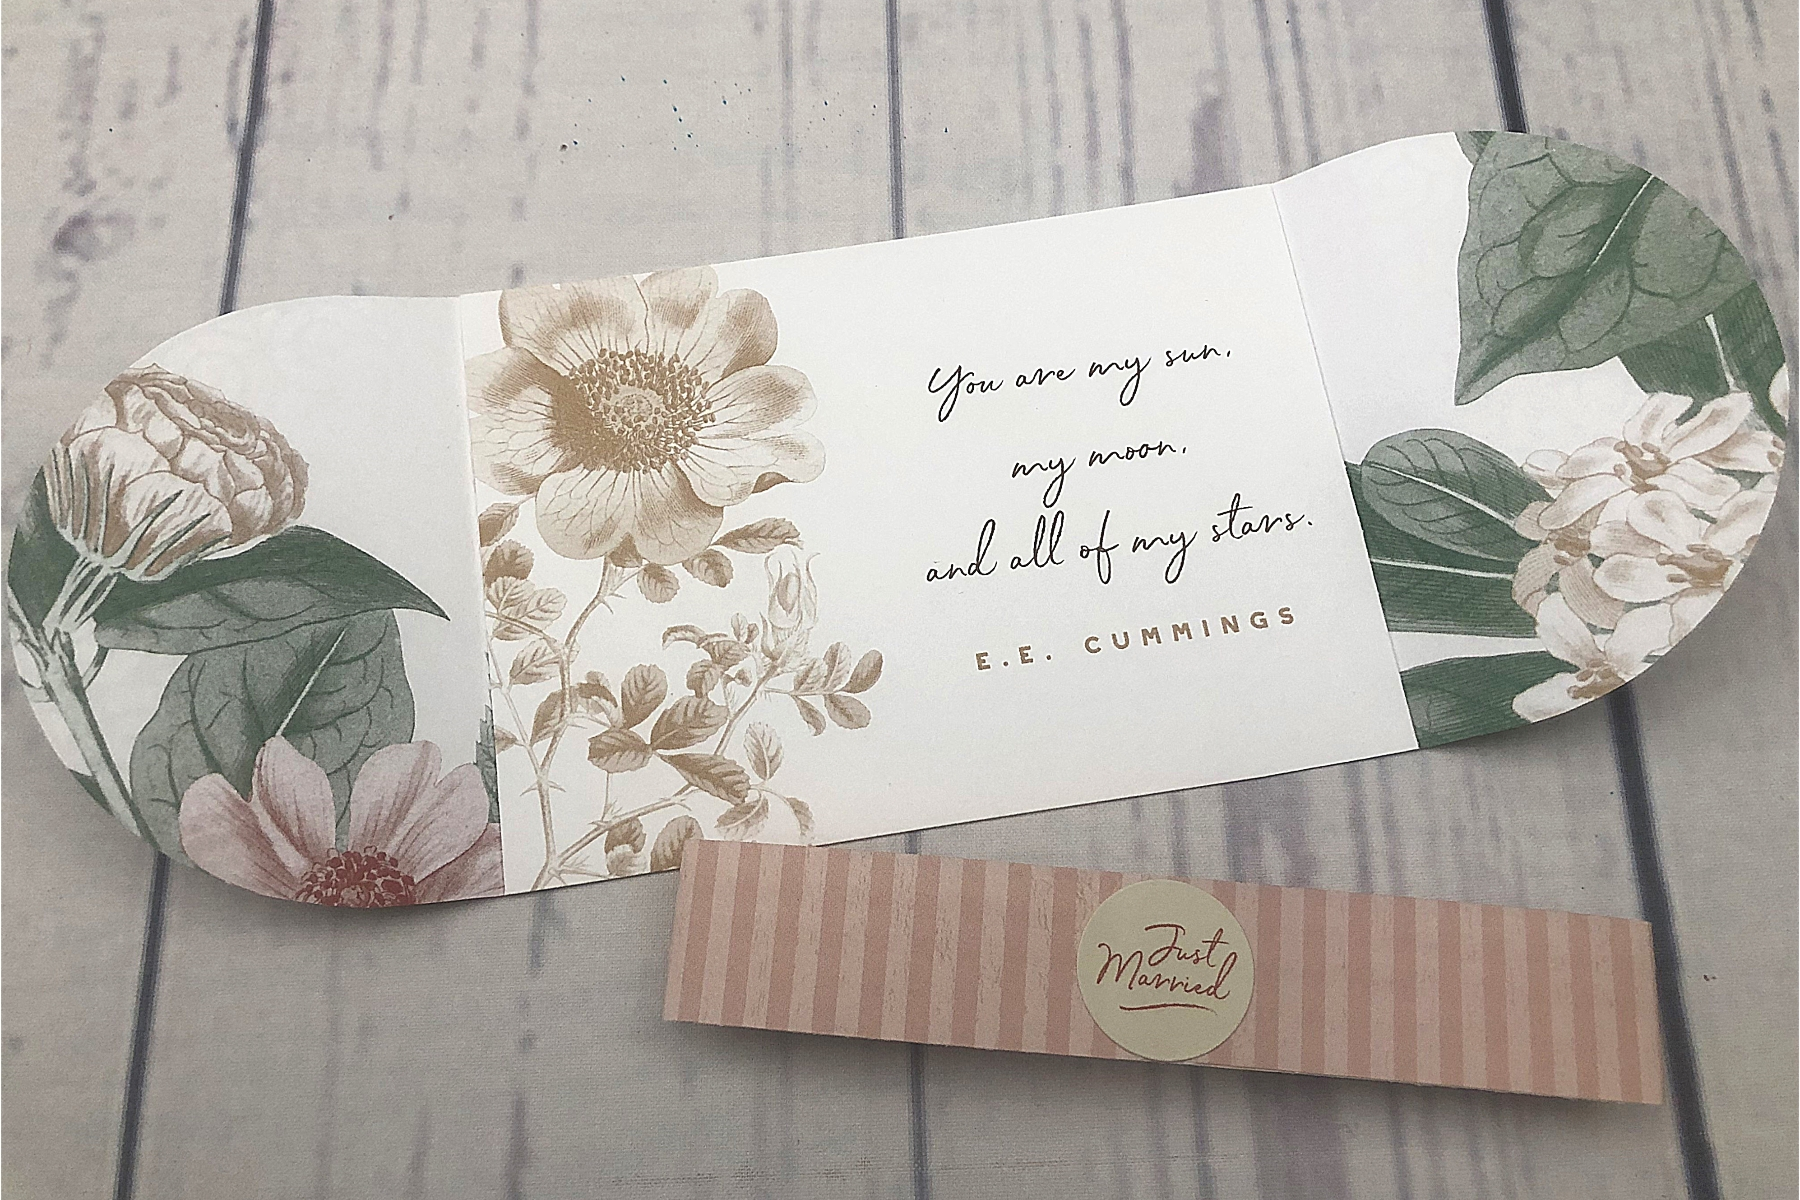 Ever-After-Wedding-Cards-Creative-Memories-NSmith6